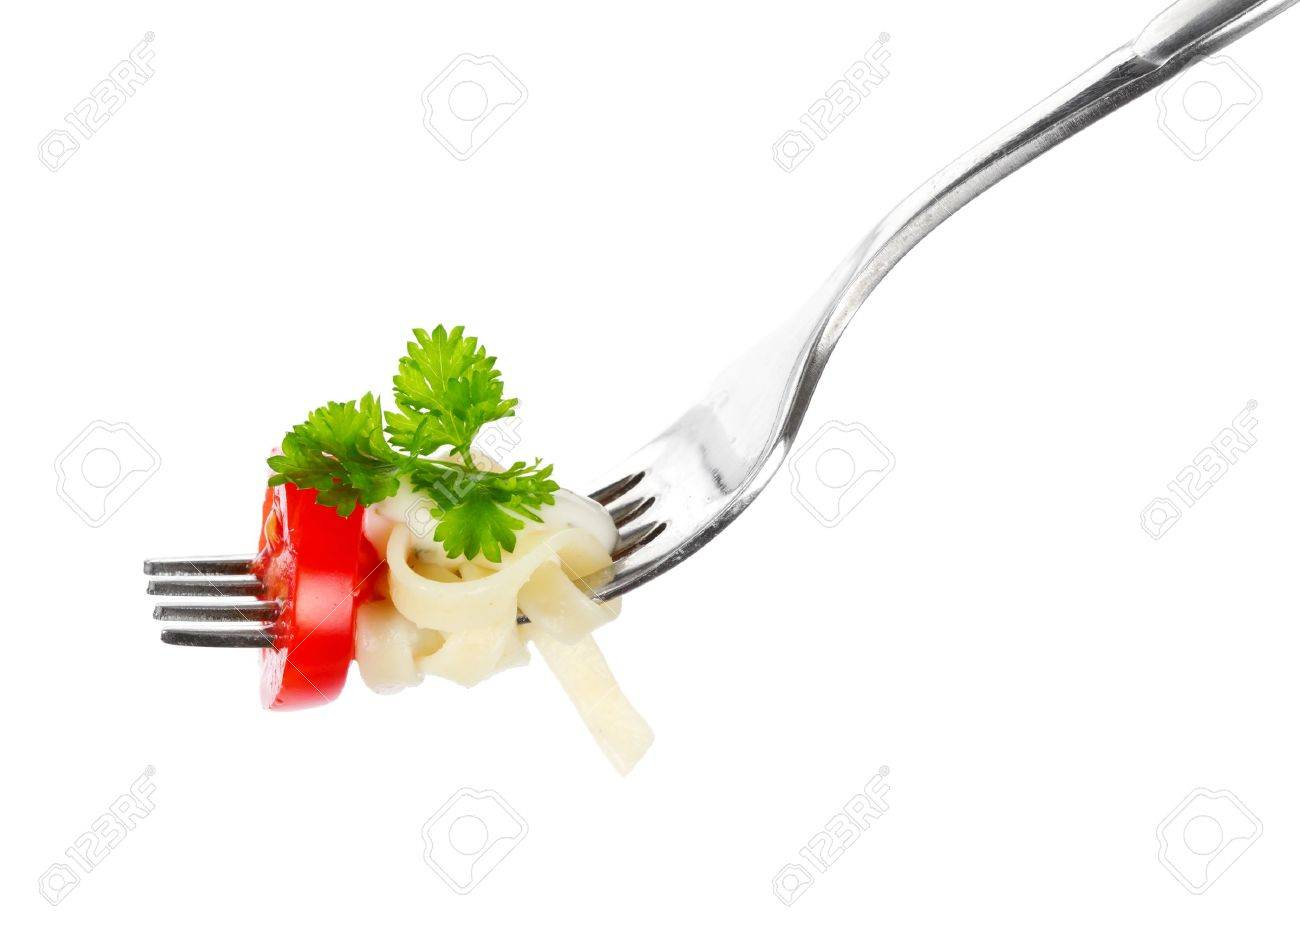 Pasta on a fork over white background - 9940037